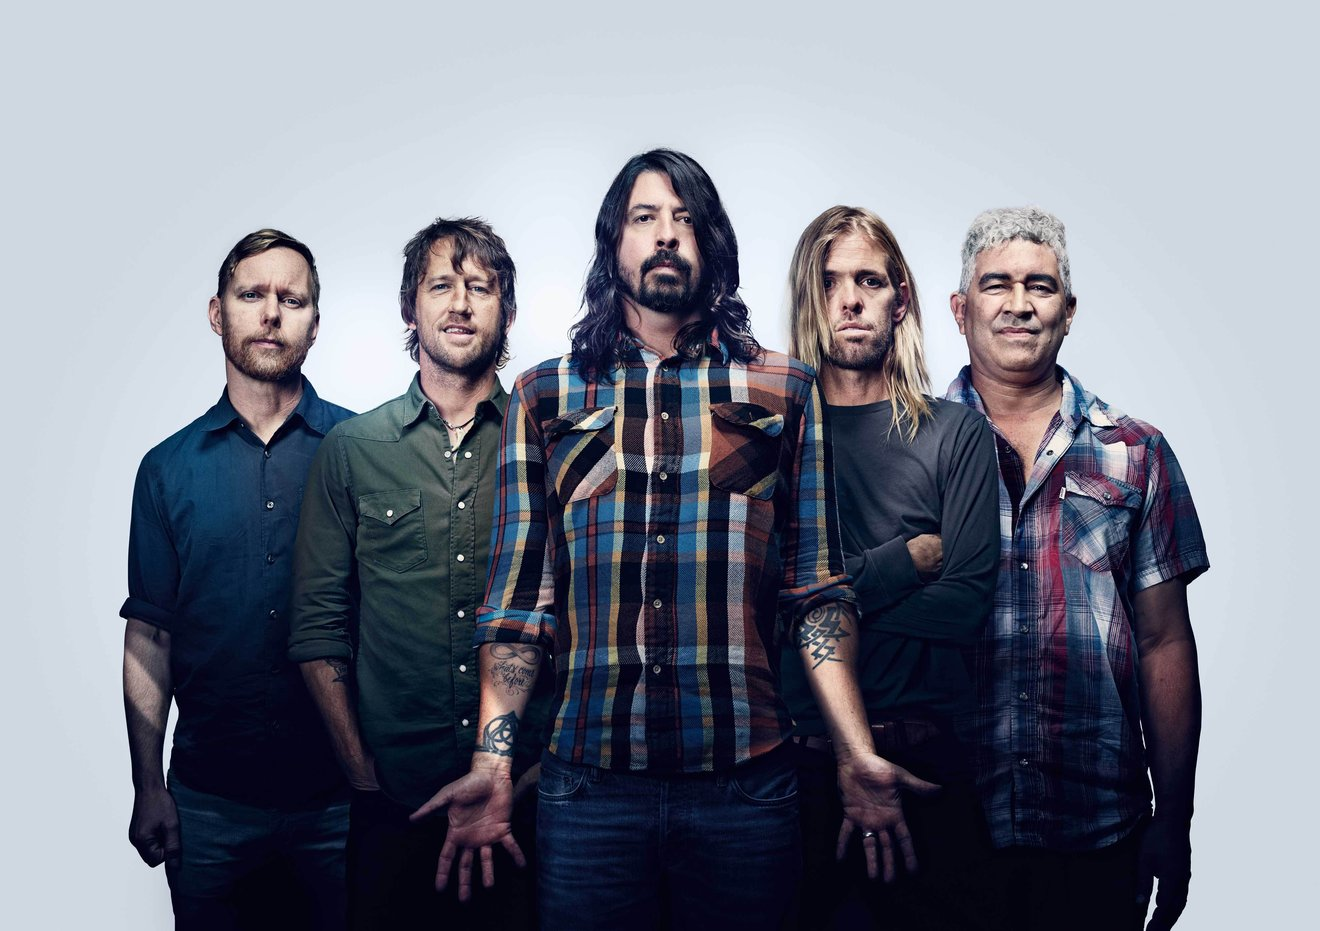 foo fighters Sonic Highways vinto emmy awards